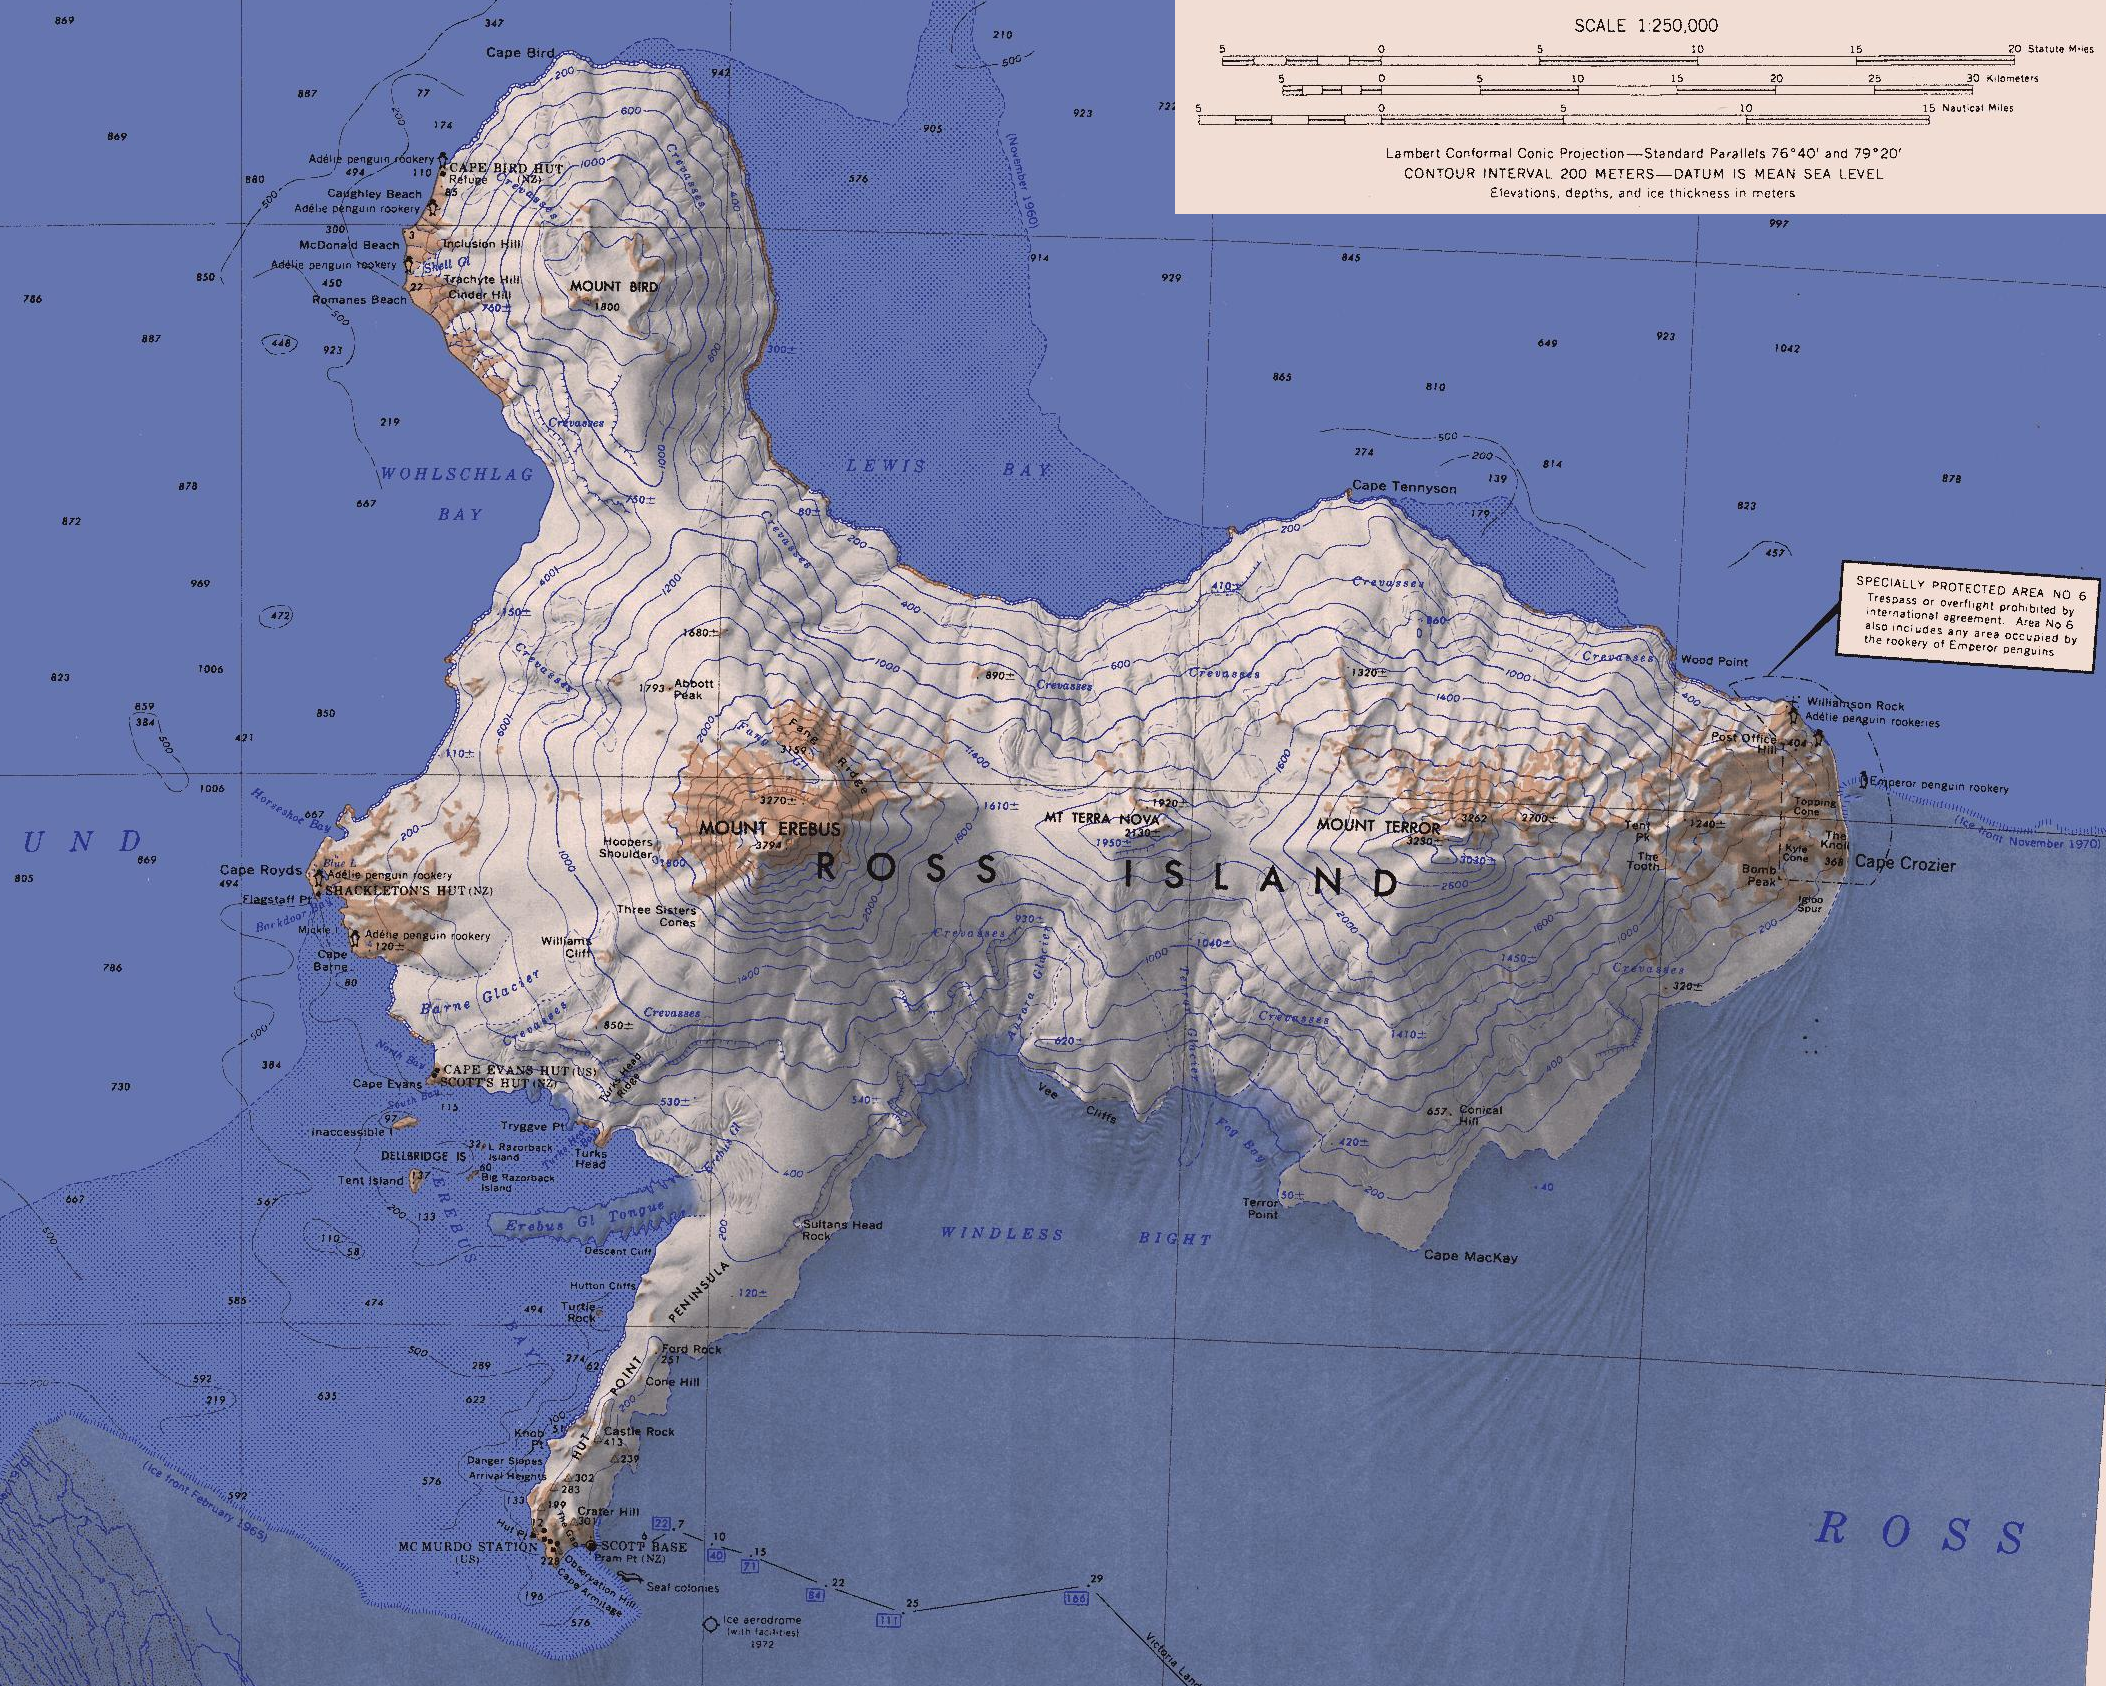 Topographic map of Ross Island Antarctica by US Navy 1972 map